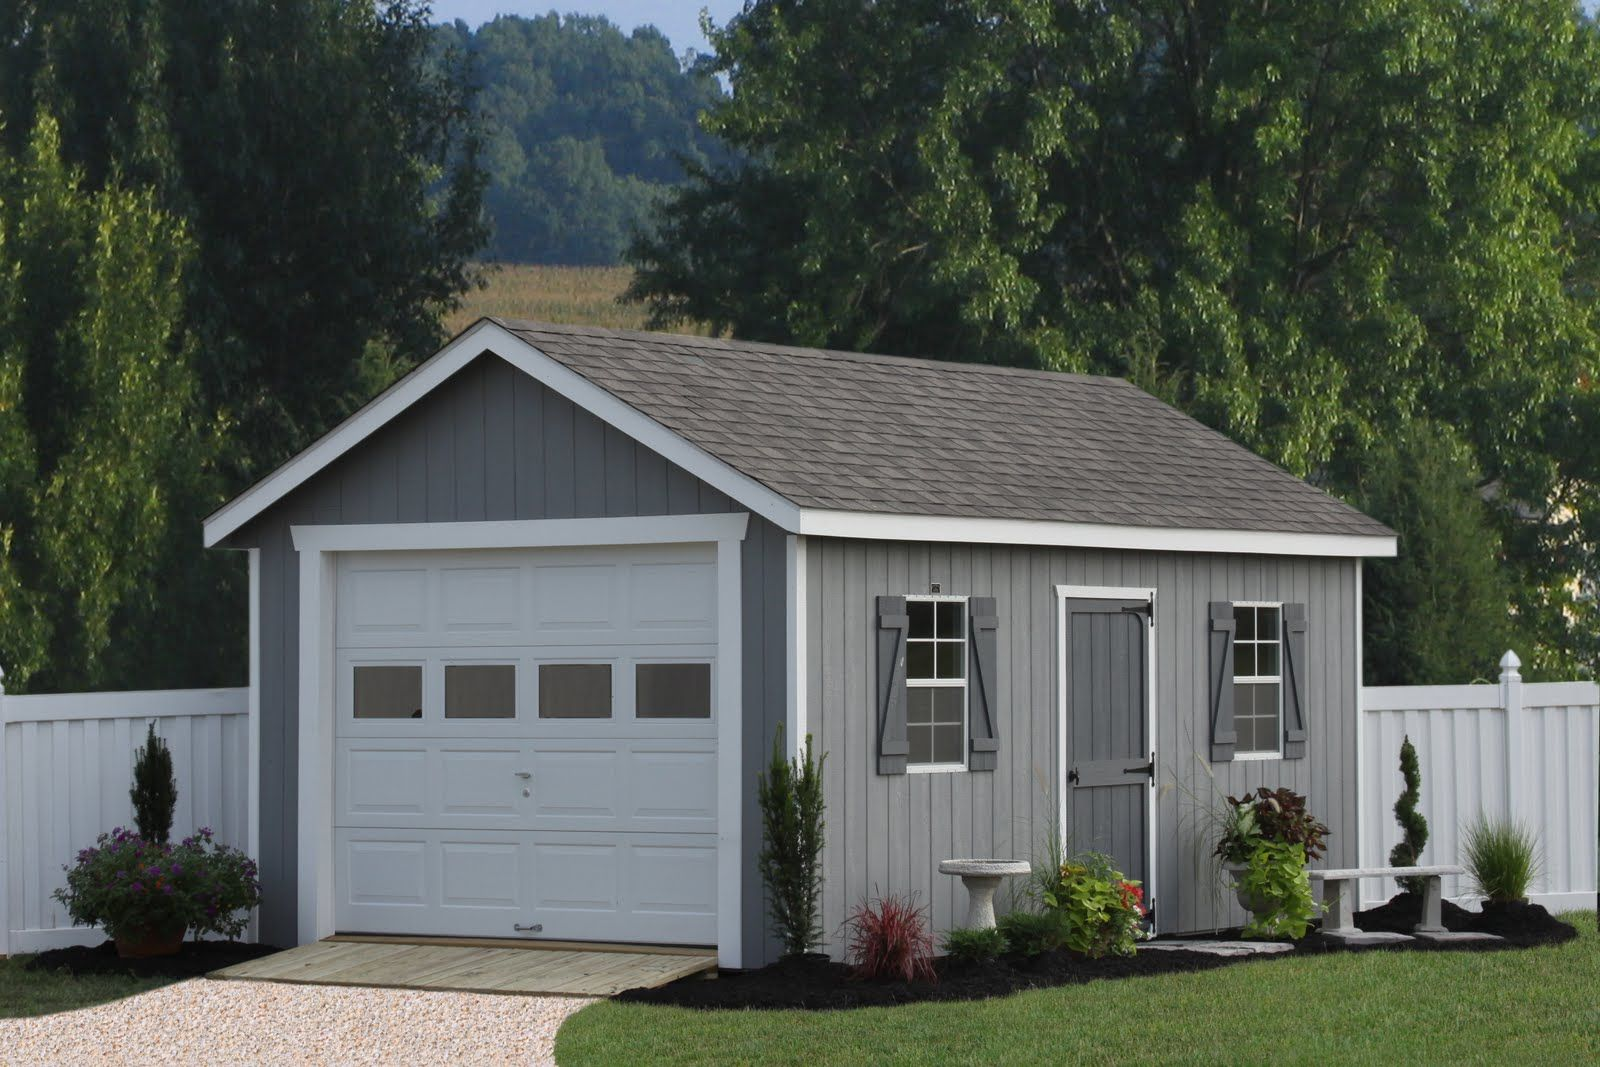 Add on garage plans 12x20 classic one car garage Small house plans with 3 car garage